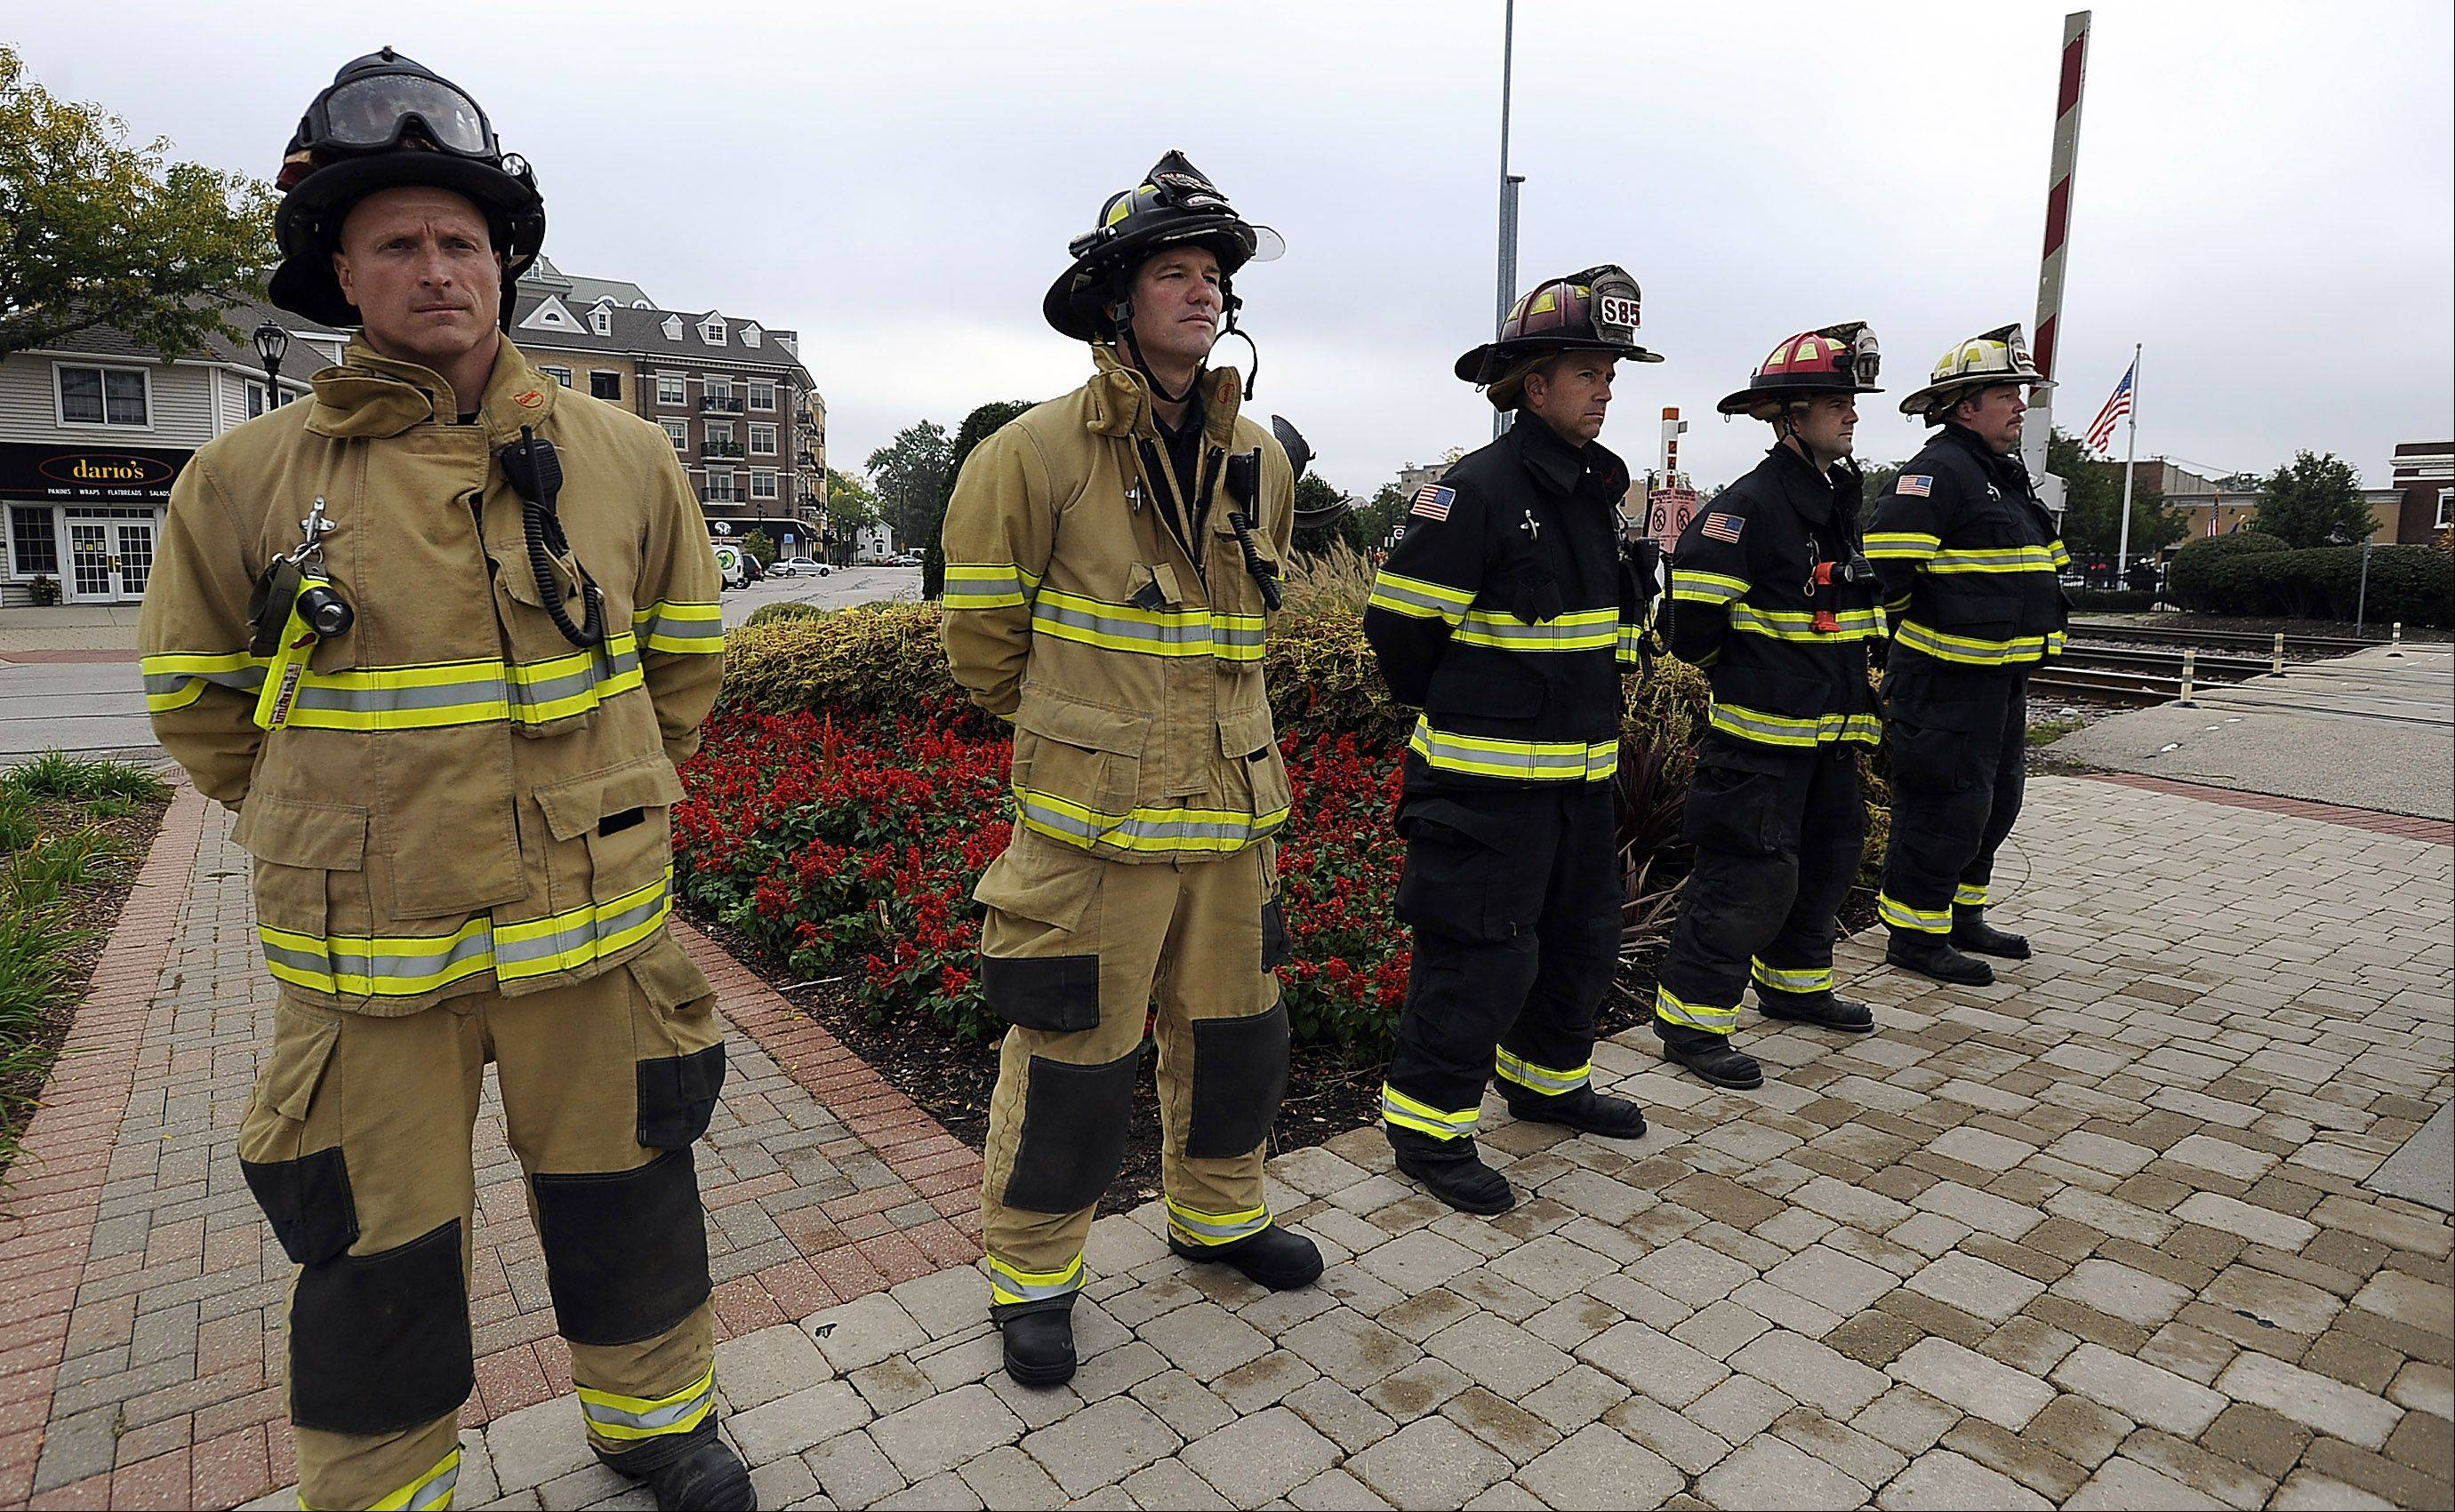 Palatine firefighters stand at attention during a ceremony Tuesday morning at the Firefighter's Memorial in downtown Palatine to honor two volunteer firefighters who died after a passenger train struck their fire truck Oct. 1, 1946.